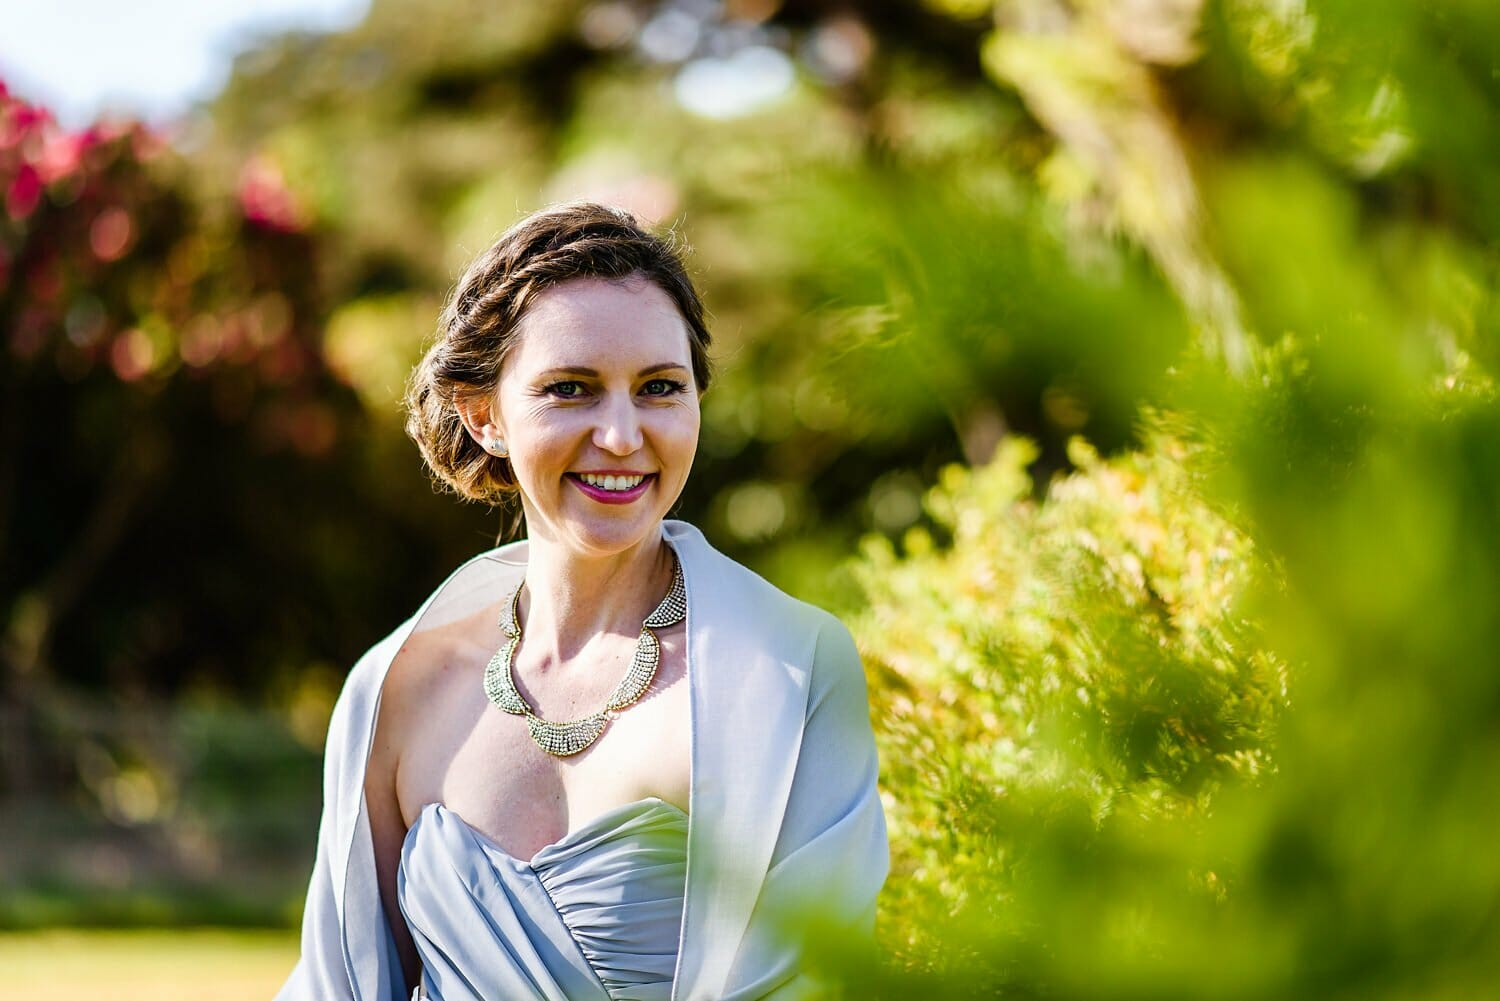 Bridesmaid photos at Studland Bay house wedding